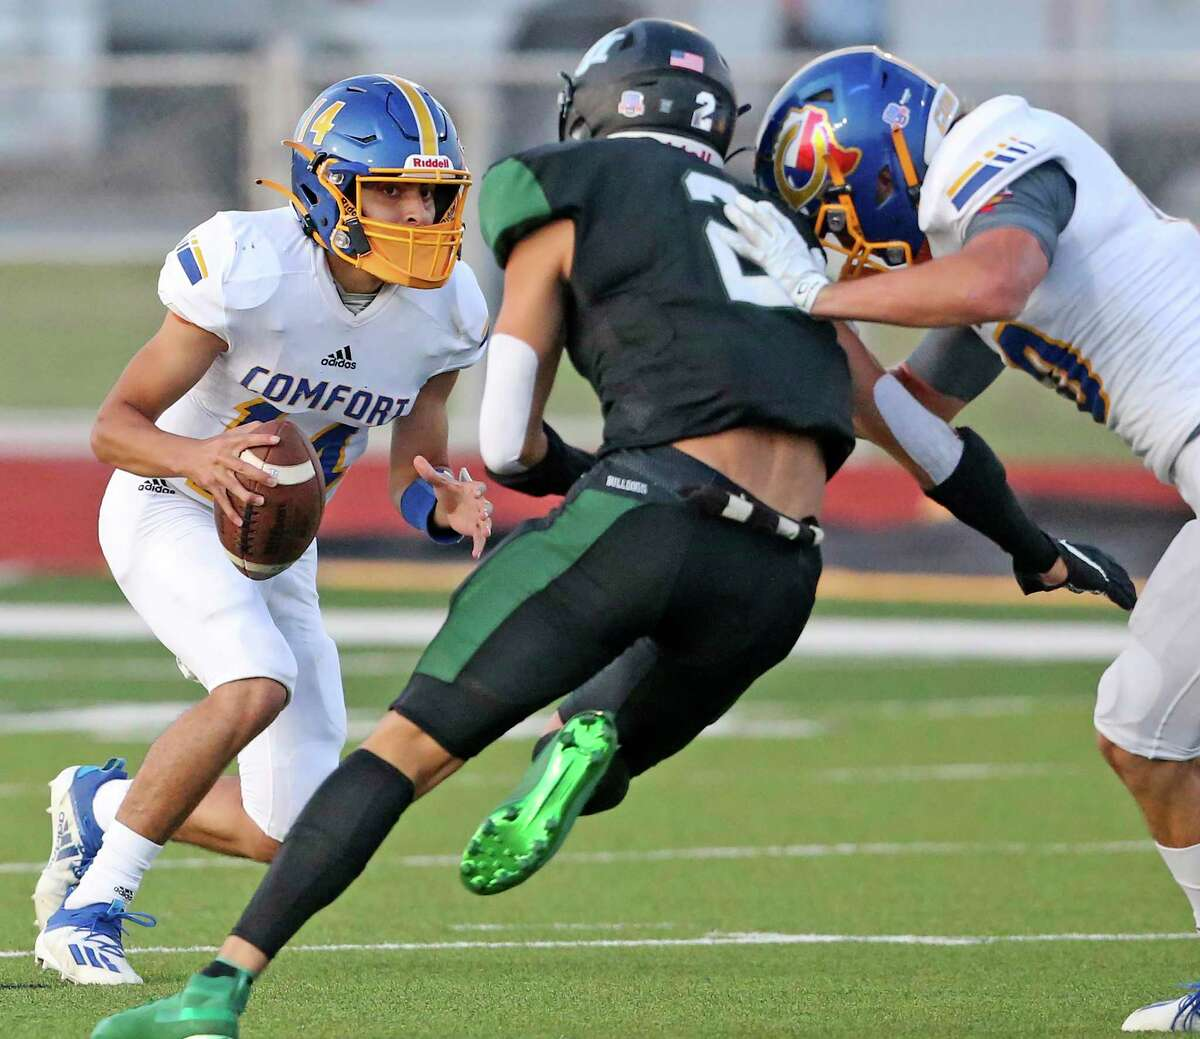 Bobcat quarterback Oscar Falcon looks for an escape route from the rush of Jayden Williams as Marion hosts Comfort at Veterans Stadium in high school football on Sept. 11, 2020.